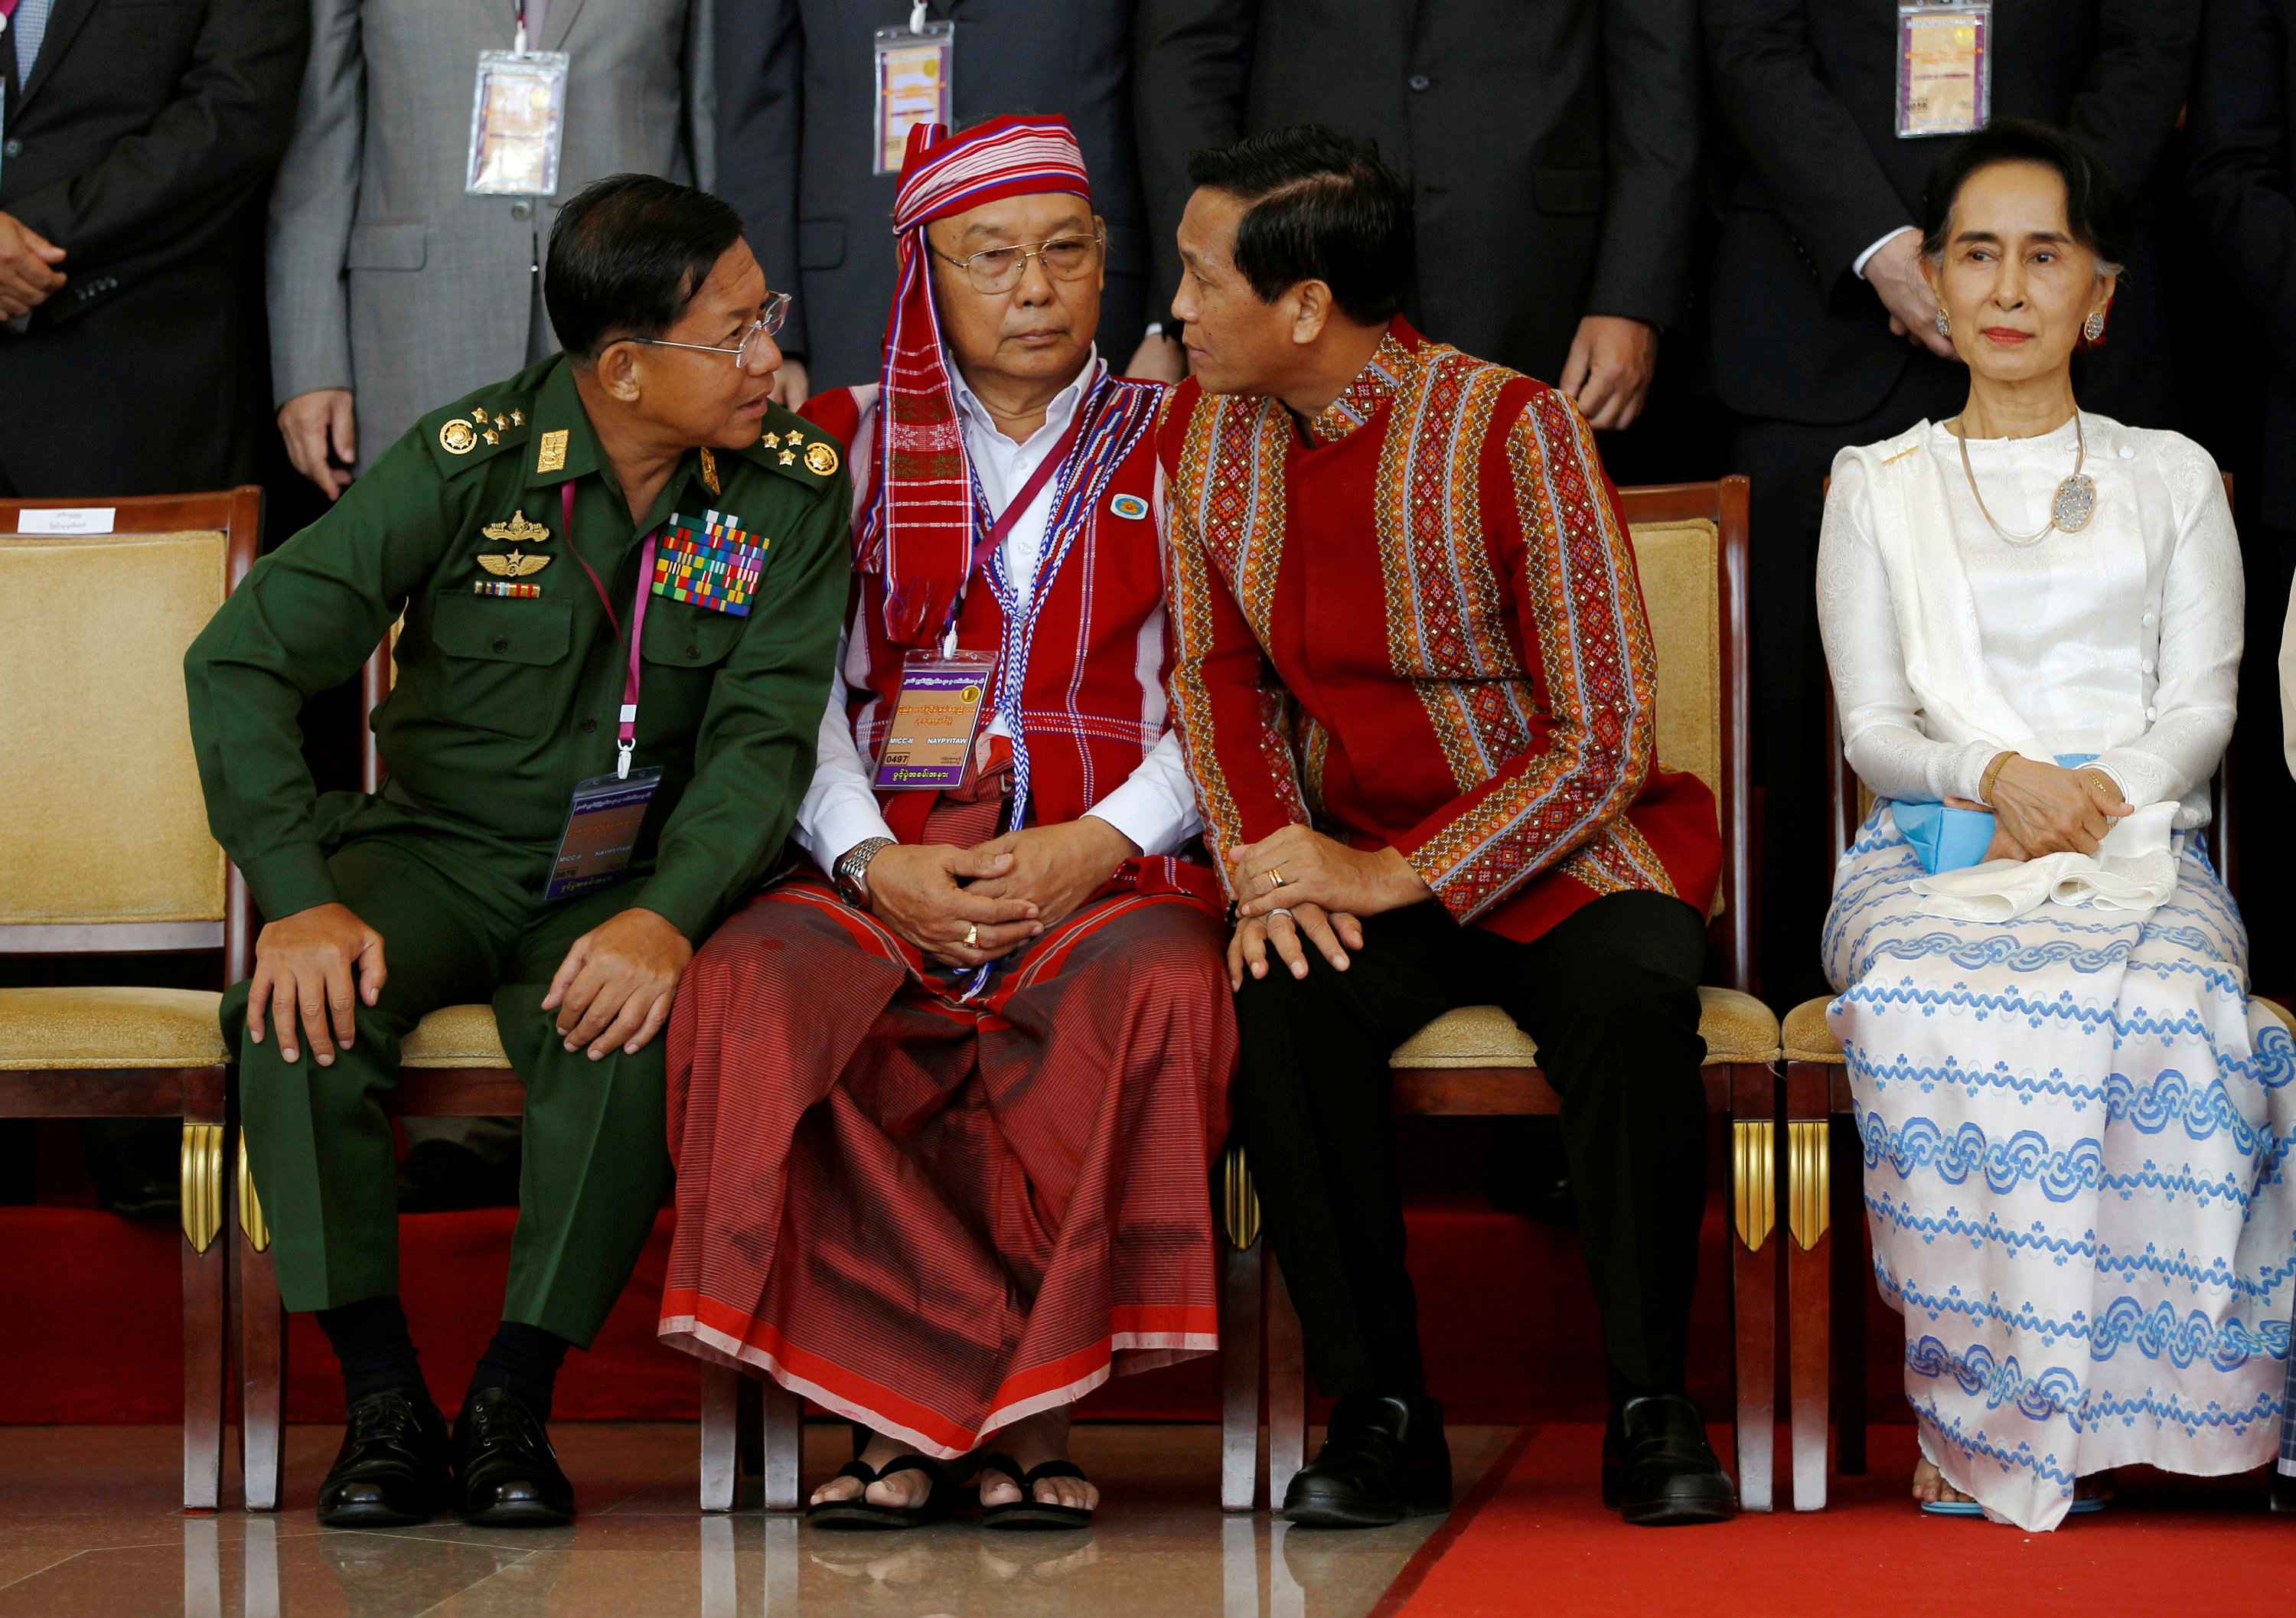 Myanmar commander in chief Senior Gen. Min Aung Hlaing (left), parliamentary upper house Speaker Mahn Win Khaing Than (second from left)and Vice President Henry Van Thio chat next to State Counselor Aung San Suu Kyi after the opening ceremony of the 21st Century Panglong Conference in Naypyitaw on Wednesday. | REUTERS